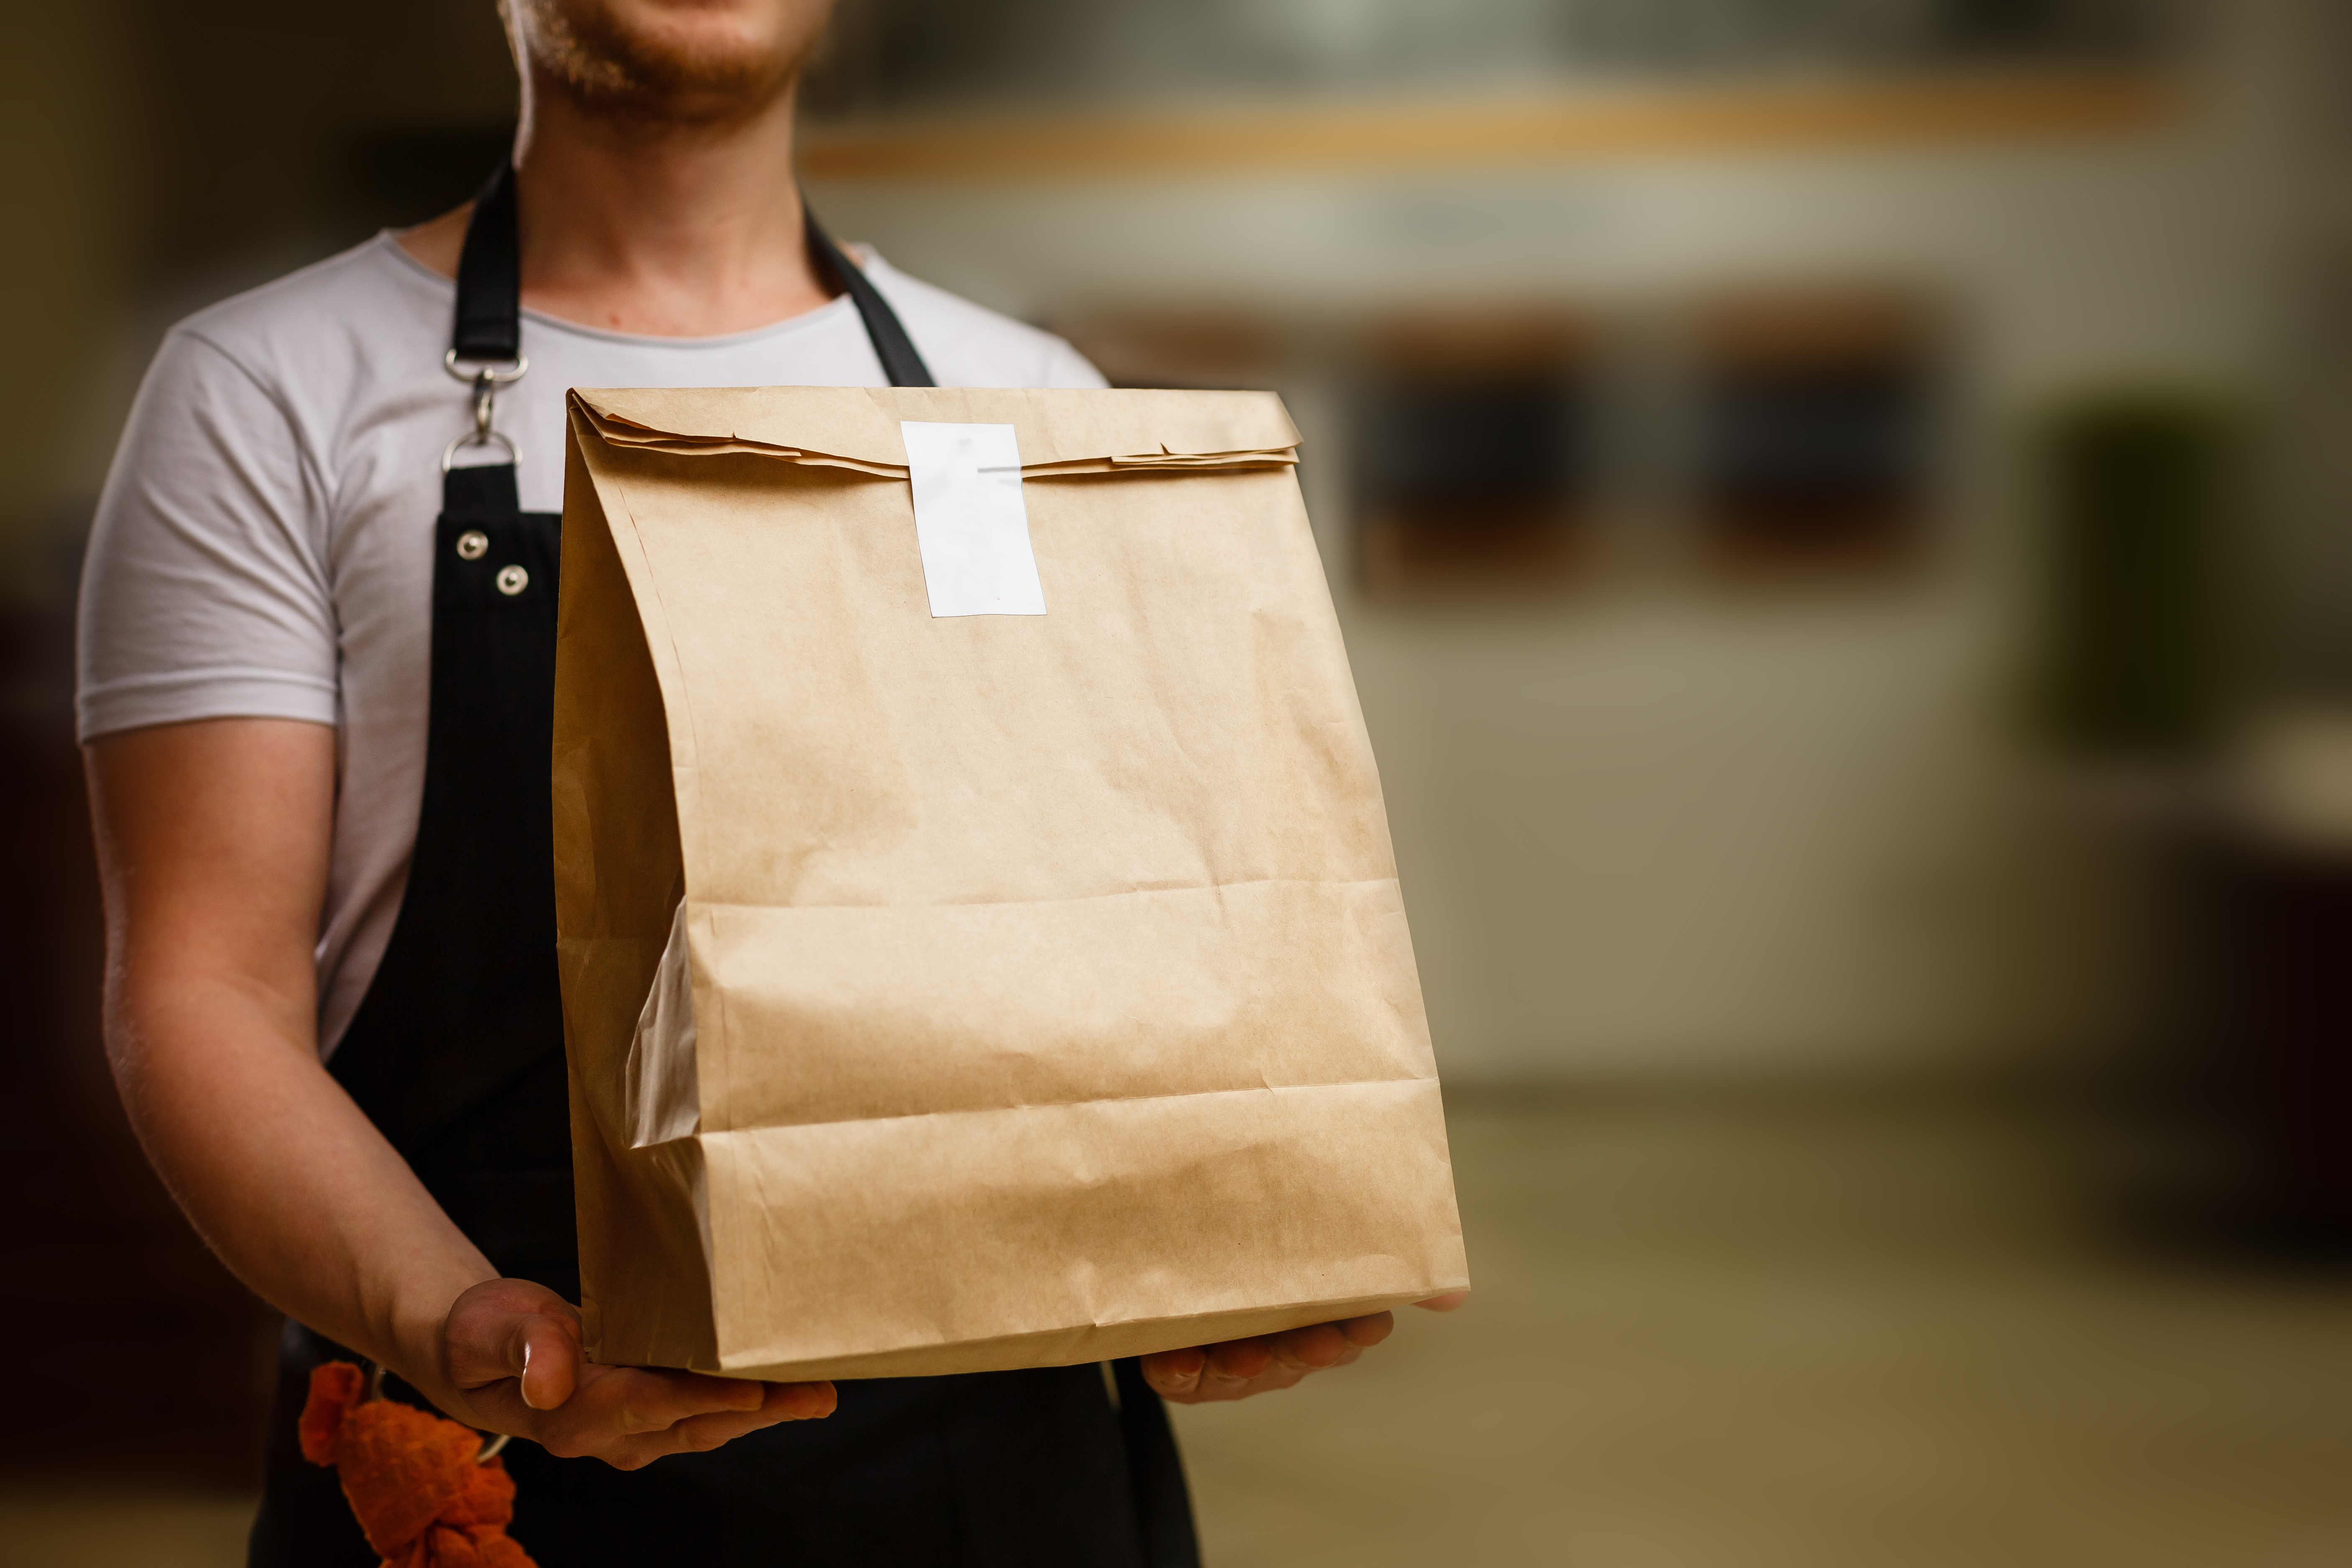 Stock photograph of a man in an apron holding a brown paper bag, ostensibly full of food for delivery